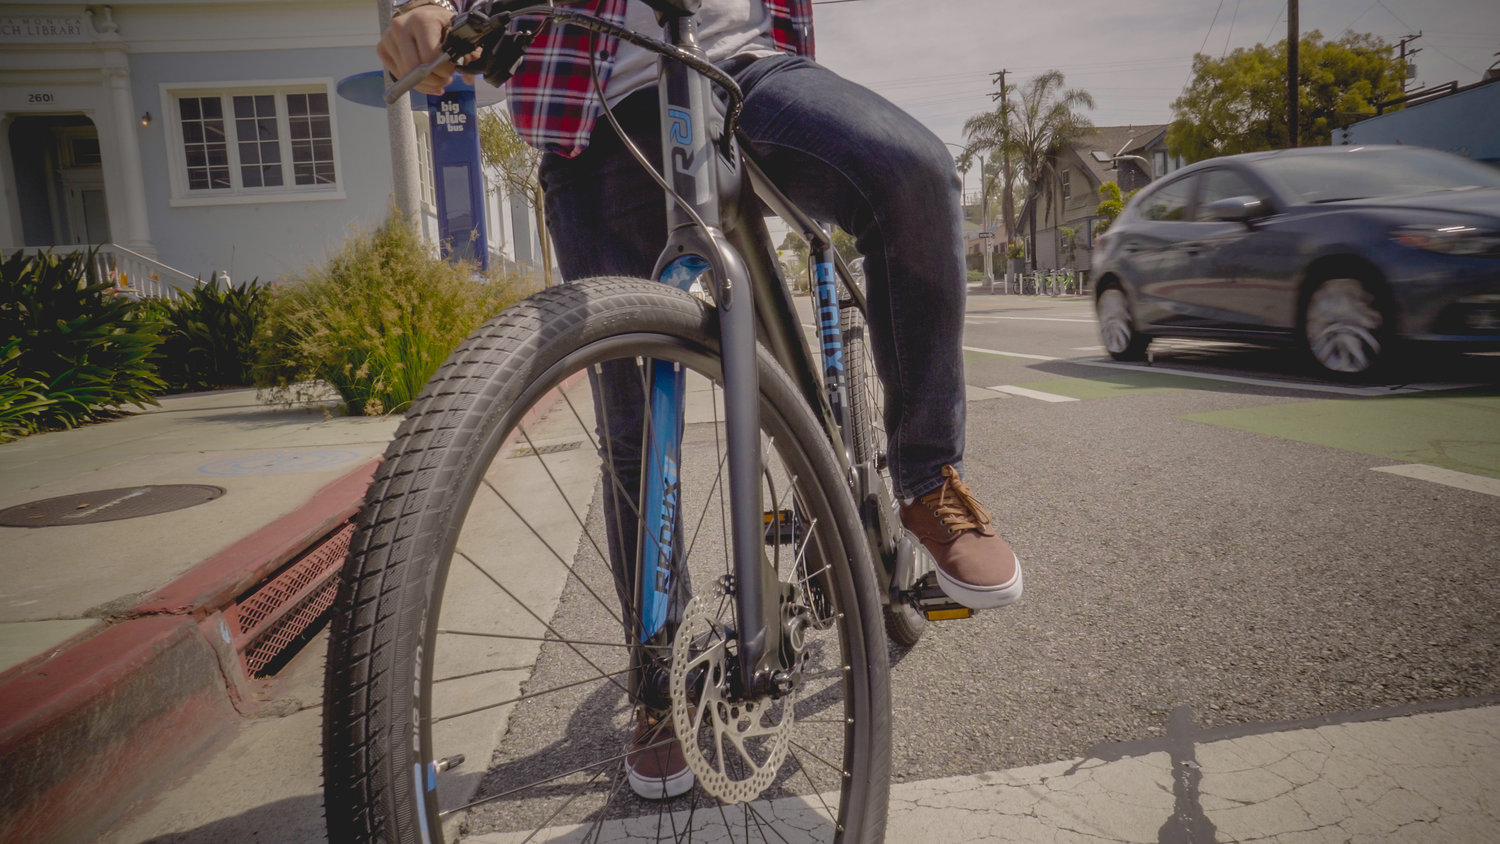 The 2017 Raleigh Electric Redux iE